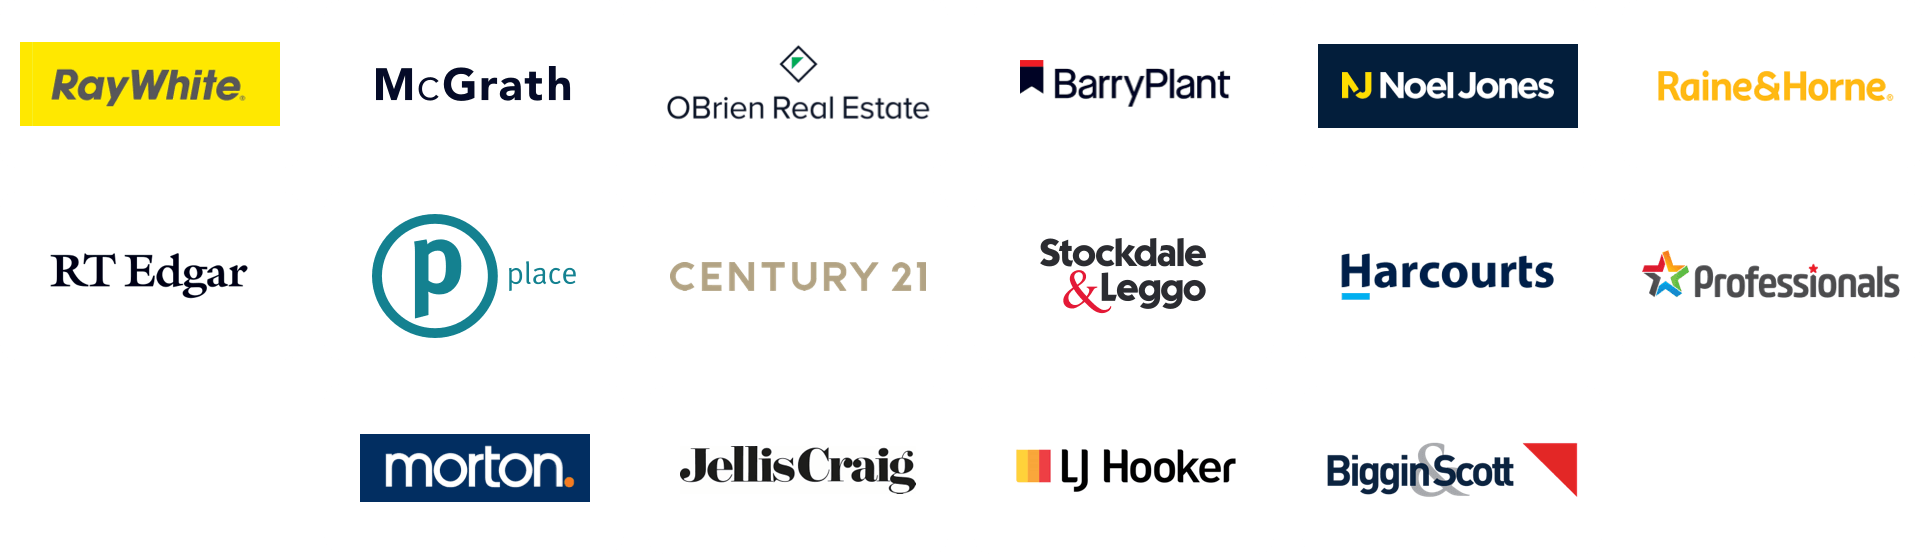 Homely's industry partners